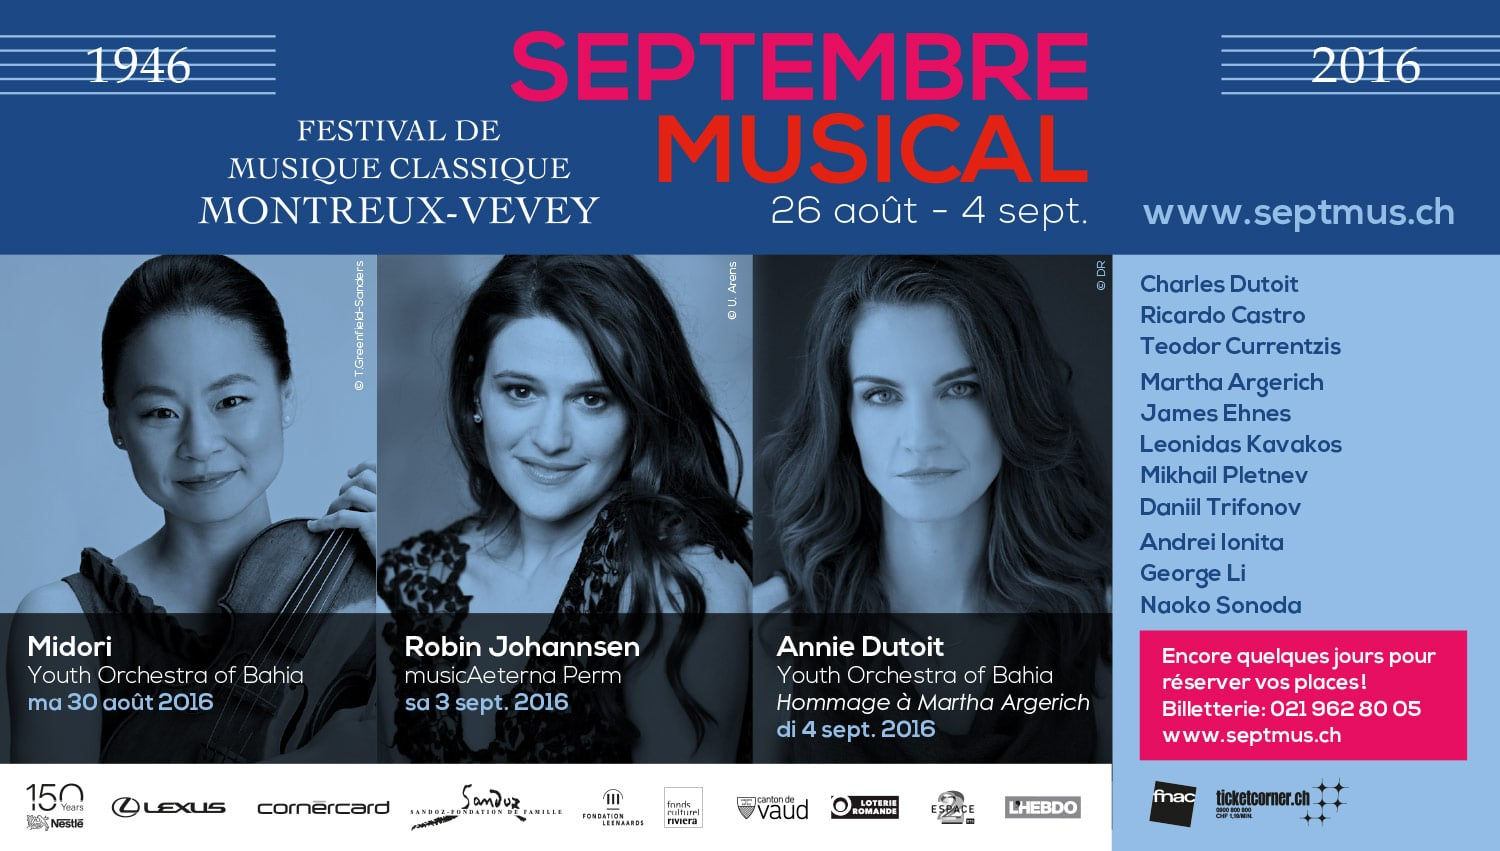 Septembre Musical - Annonces musiciennes - Haymoz design